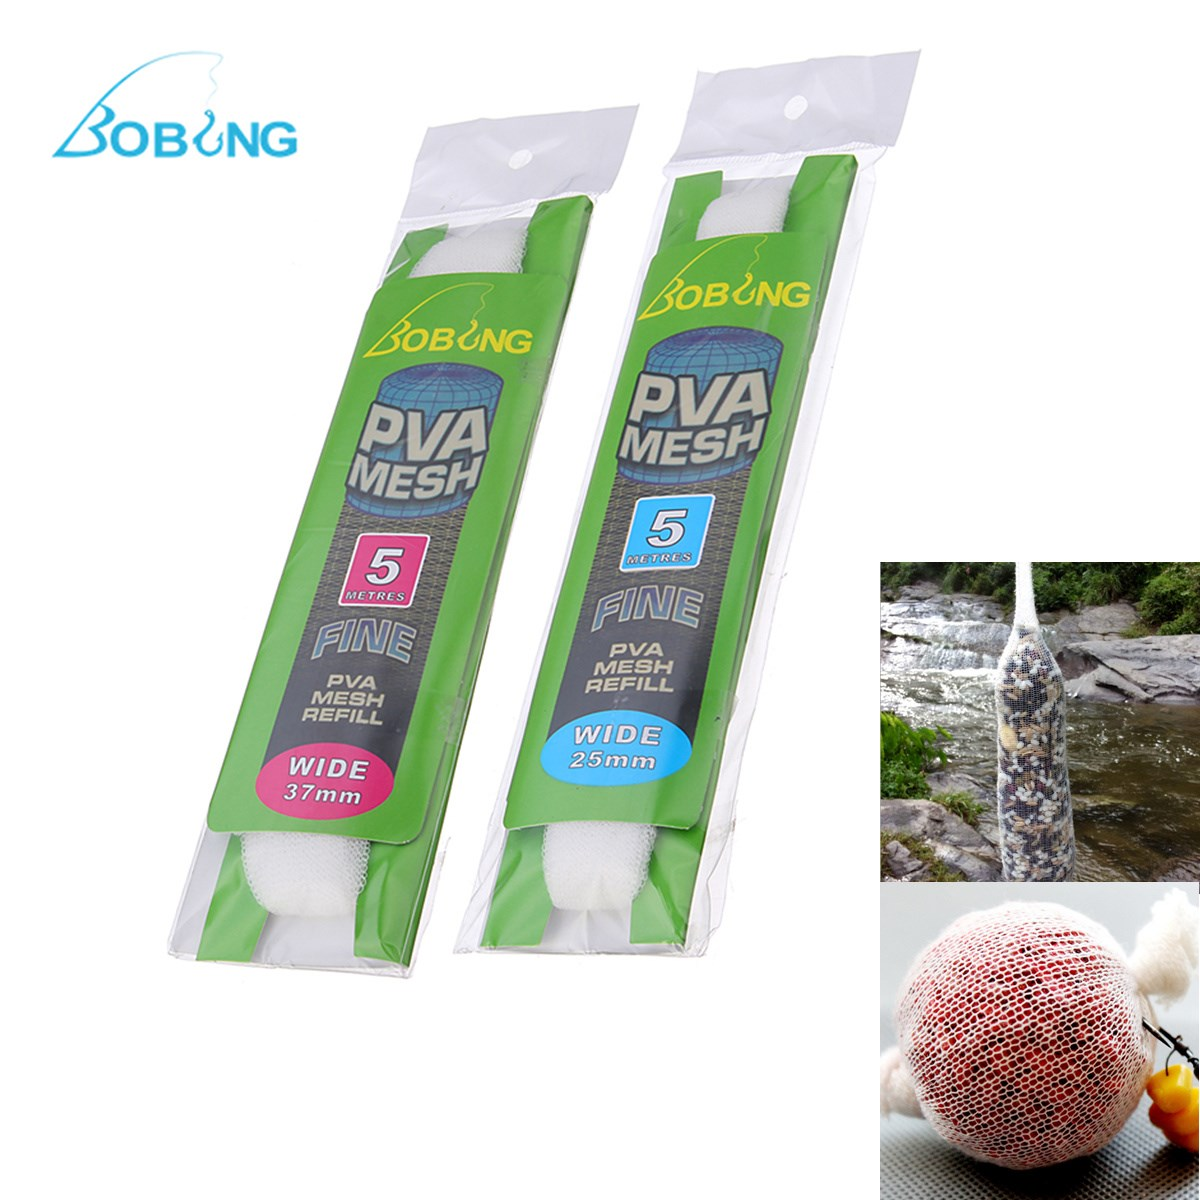 Bobing 477cm PVA Fishing Mesh Feeder Live Bait Dissolving Refill Net Tube Stocking Plunger Bag 25MM 37MM Micromesh